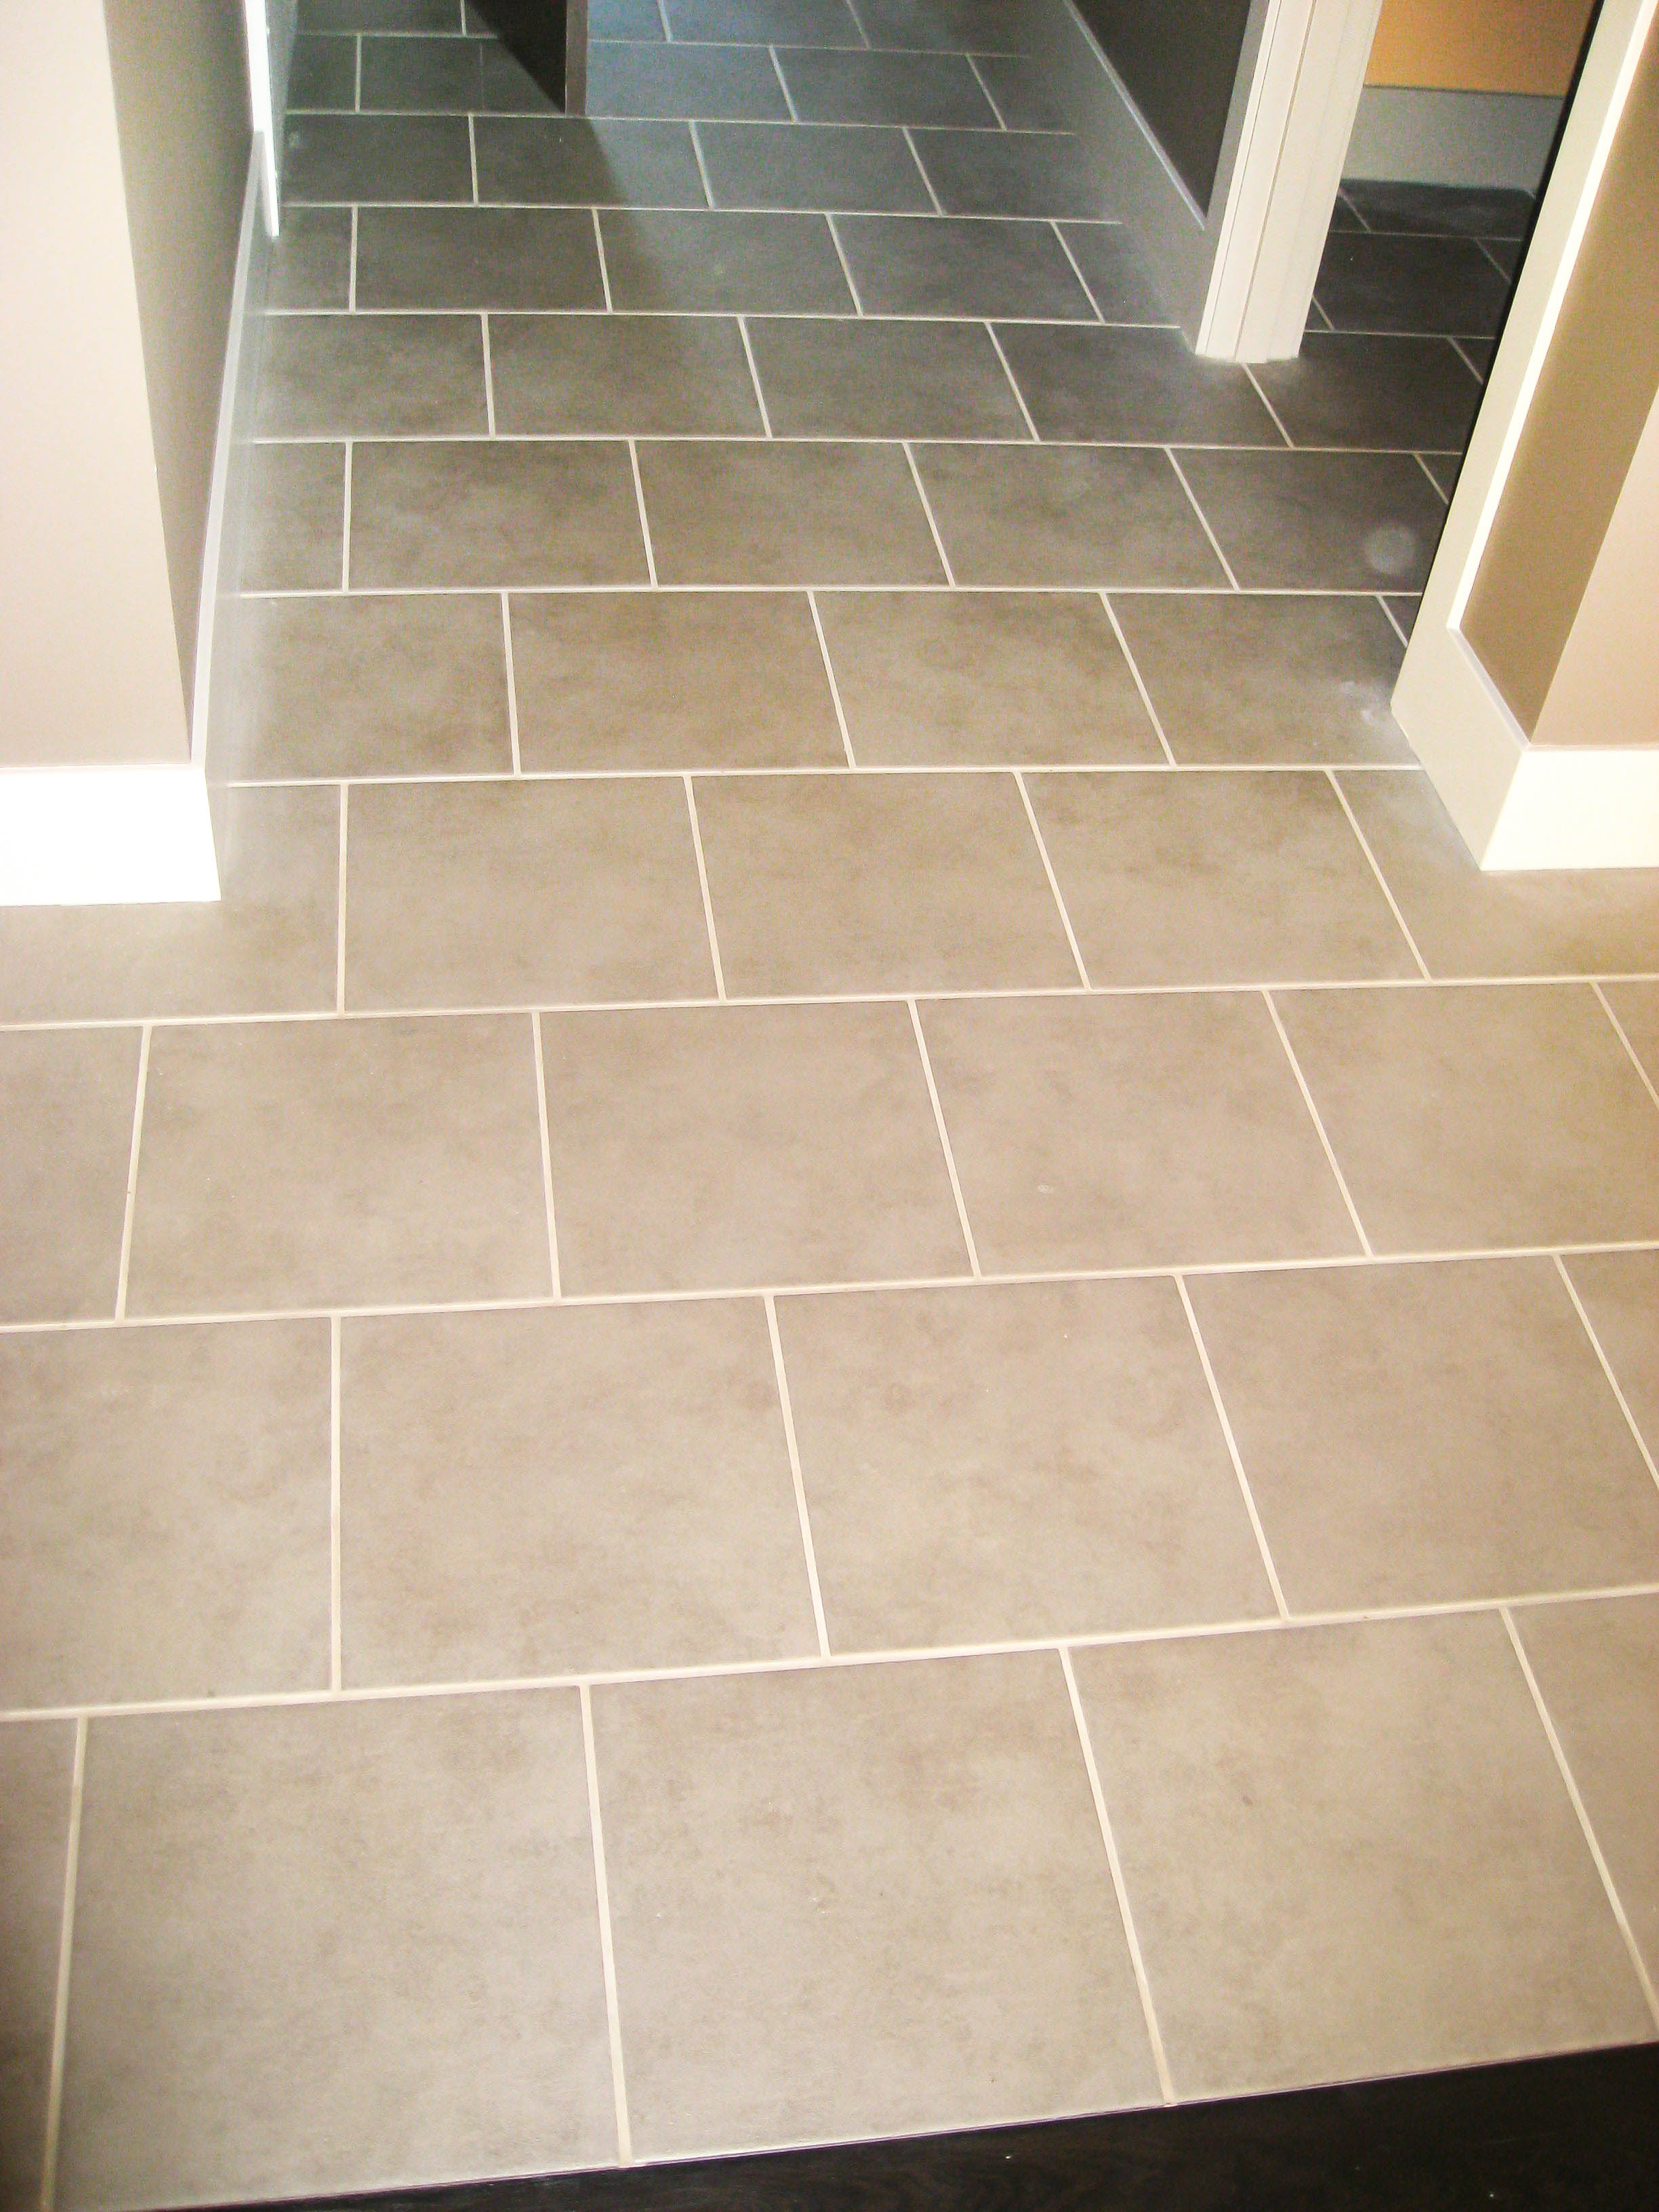 Tile and grout cleaning in Seattle